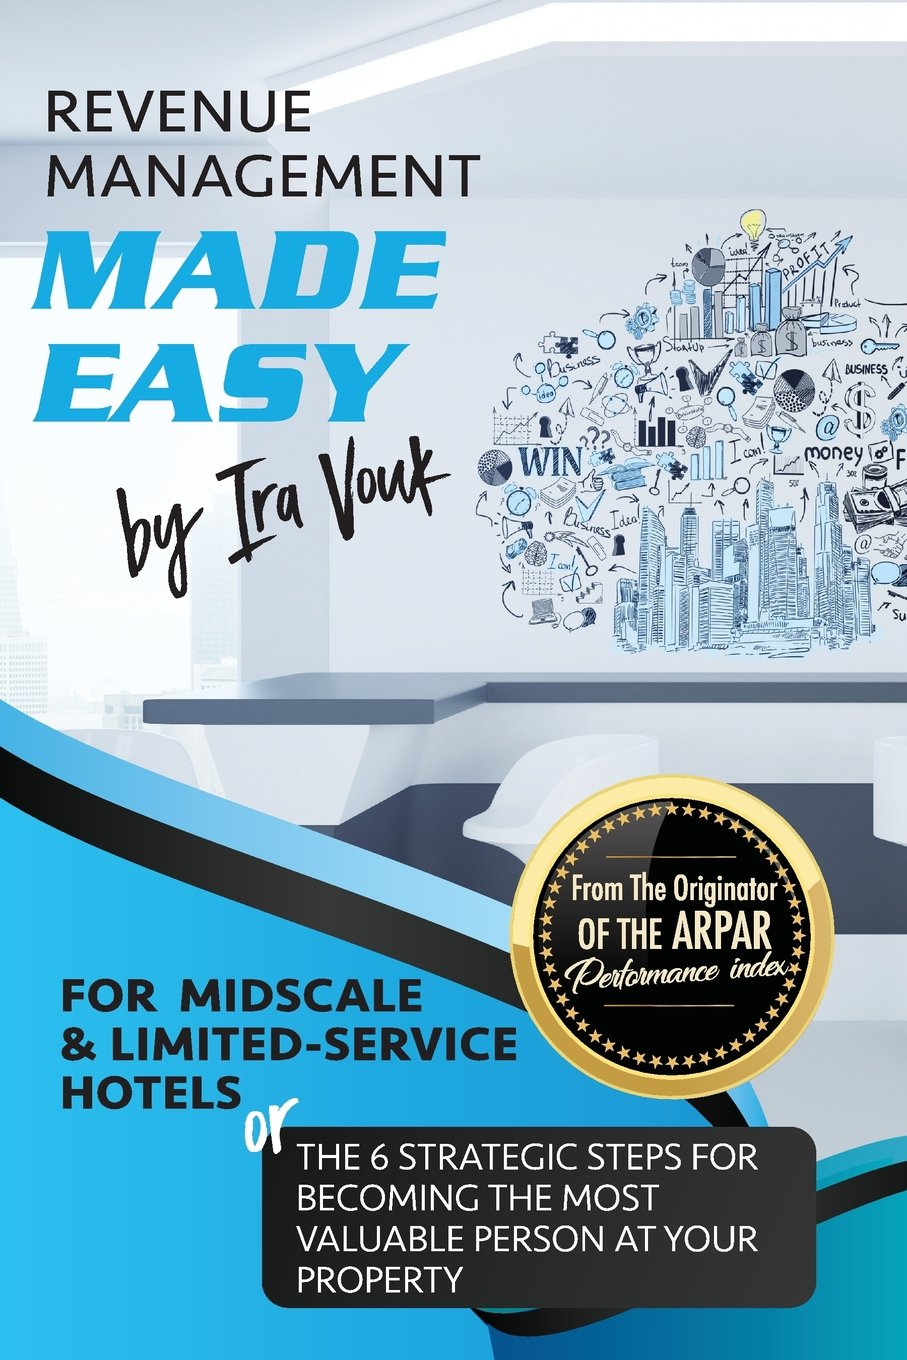 Read Online REVENUE MANAGEMENT MADE EASY, for Midscale and Limited-Service Hotels: The 6 Strategic Steps for Becoming the Most Valuable Person at Your Property PDF